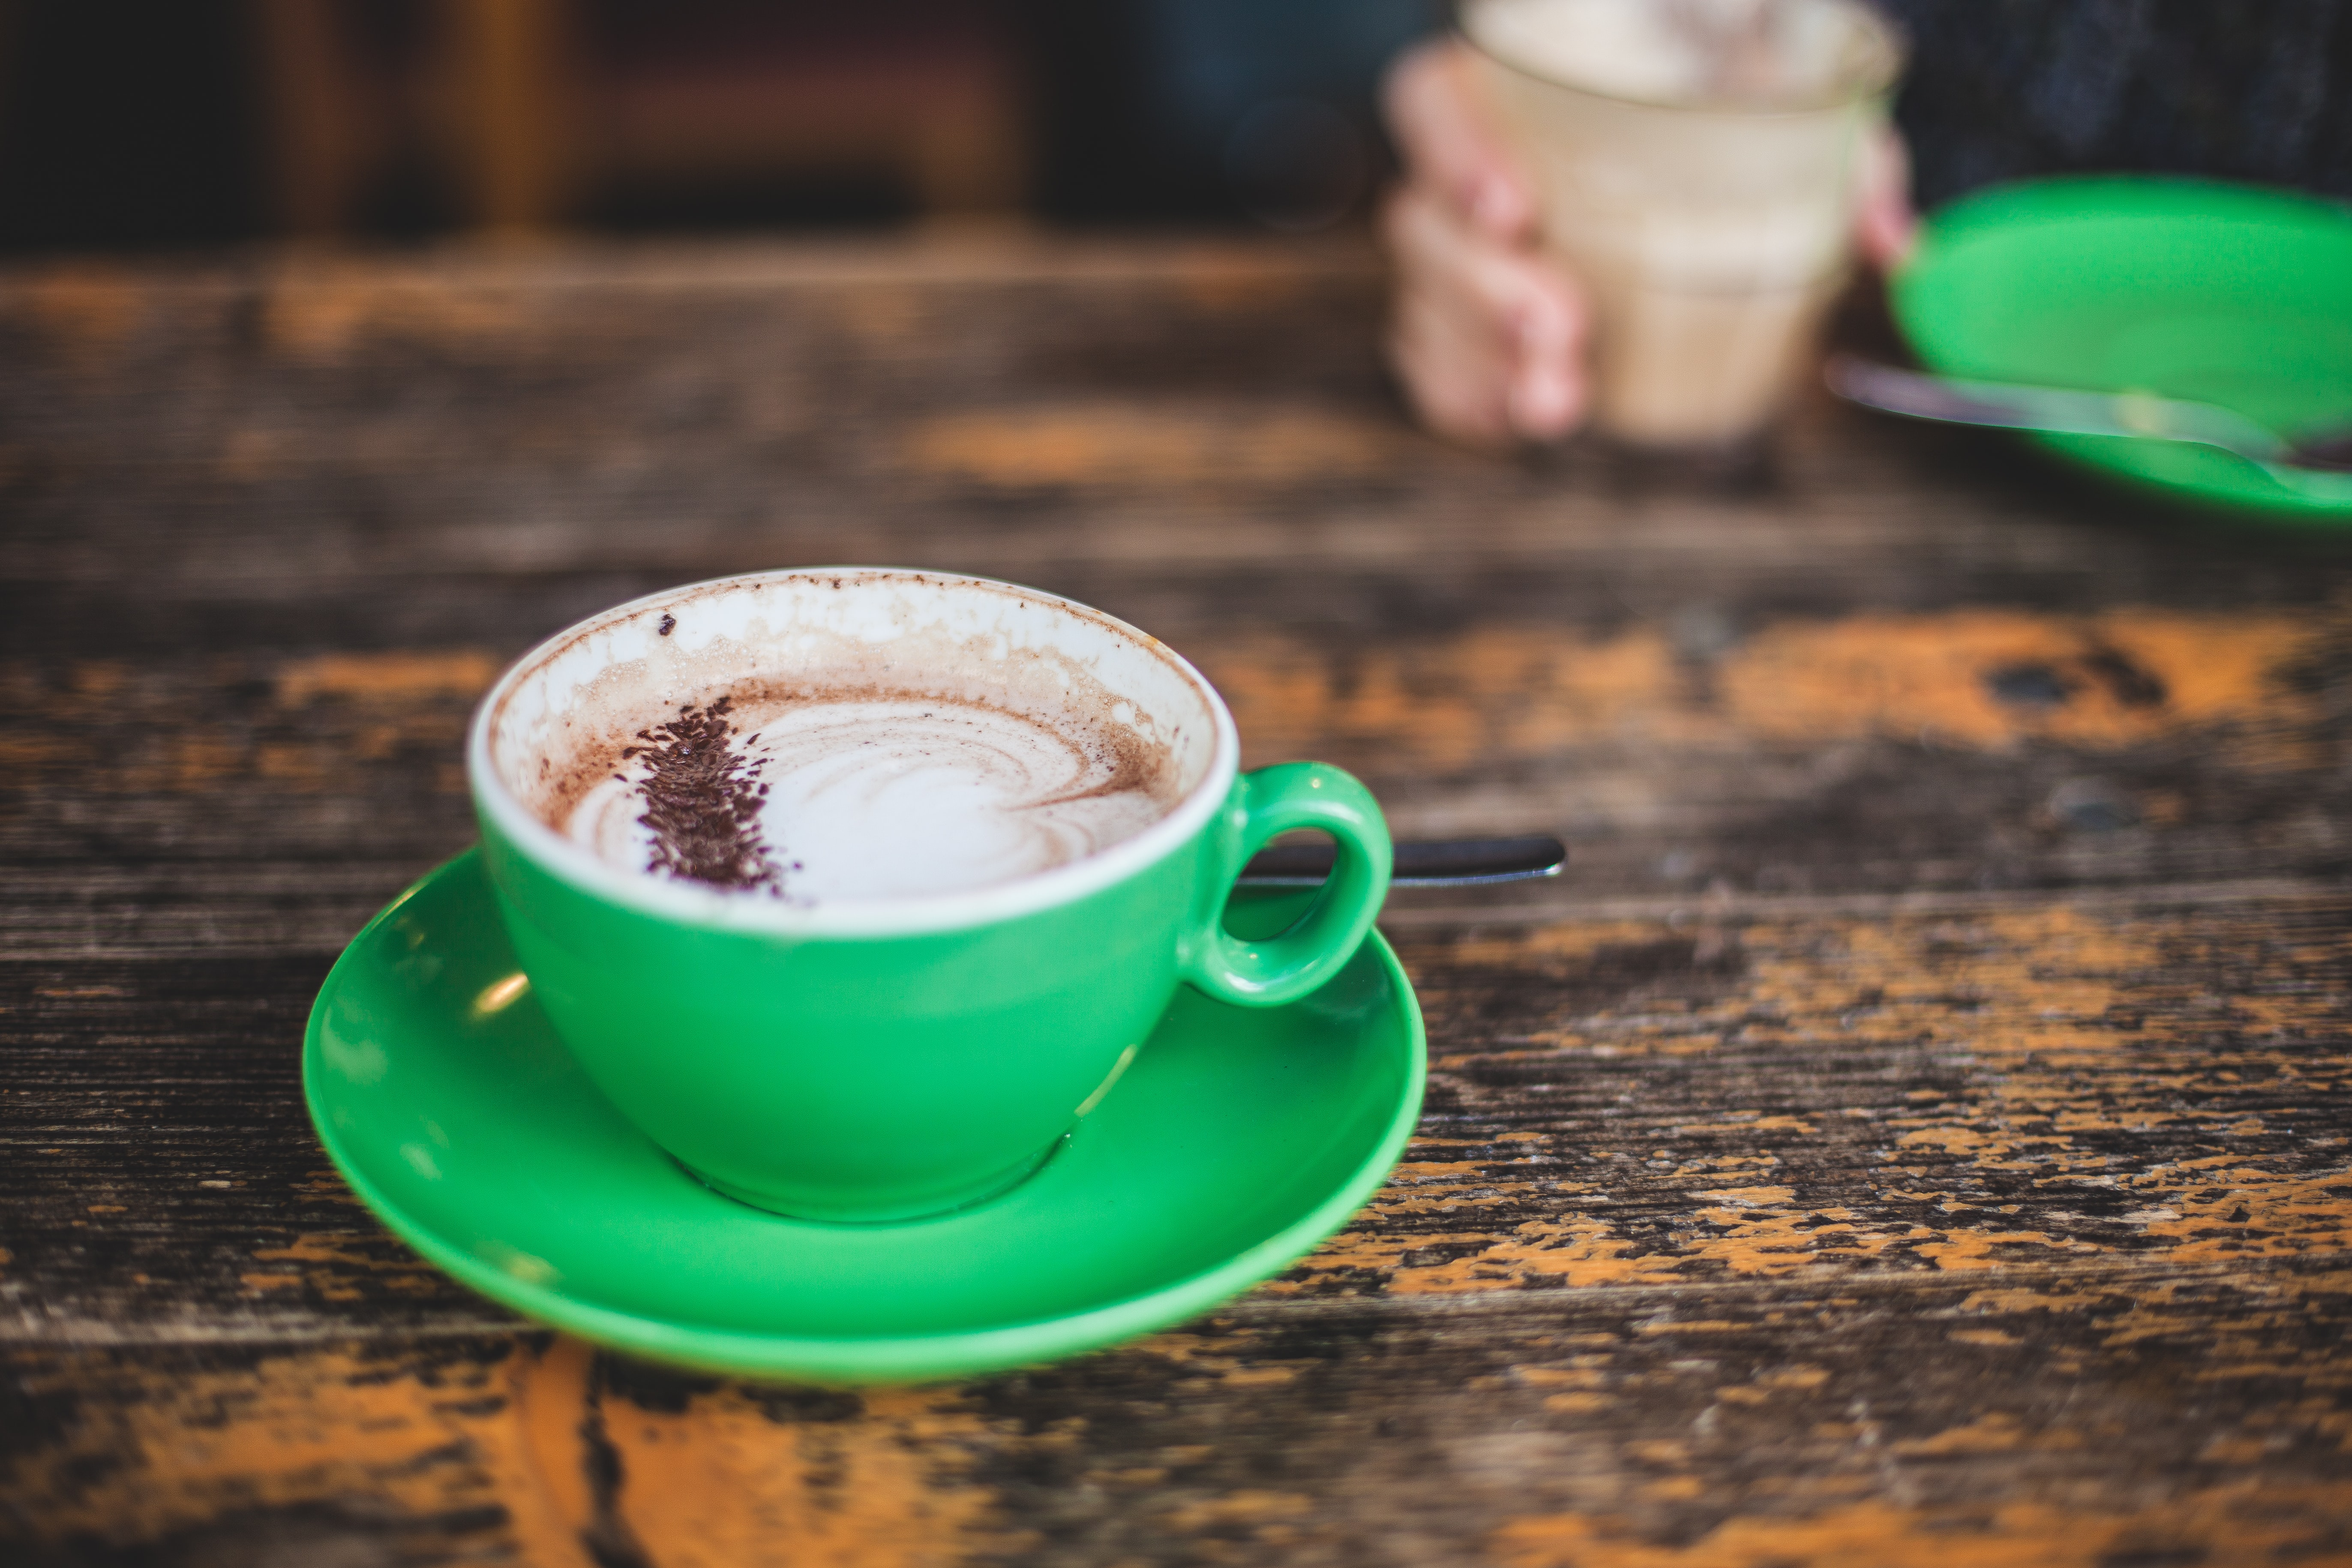 shallow focus photography of green teacup with coffee inside